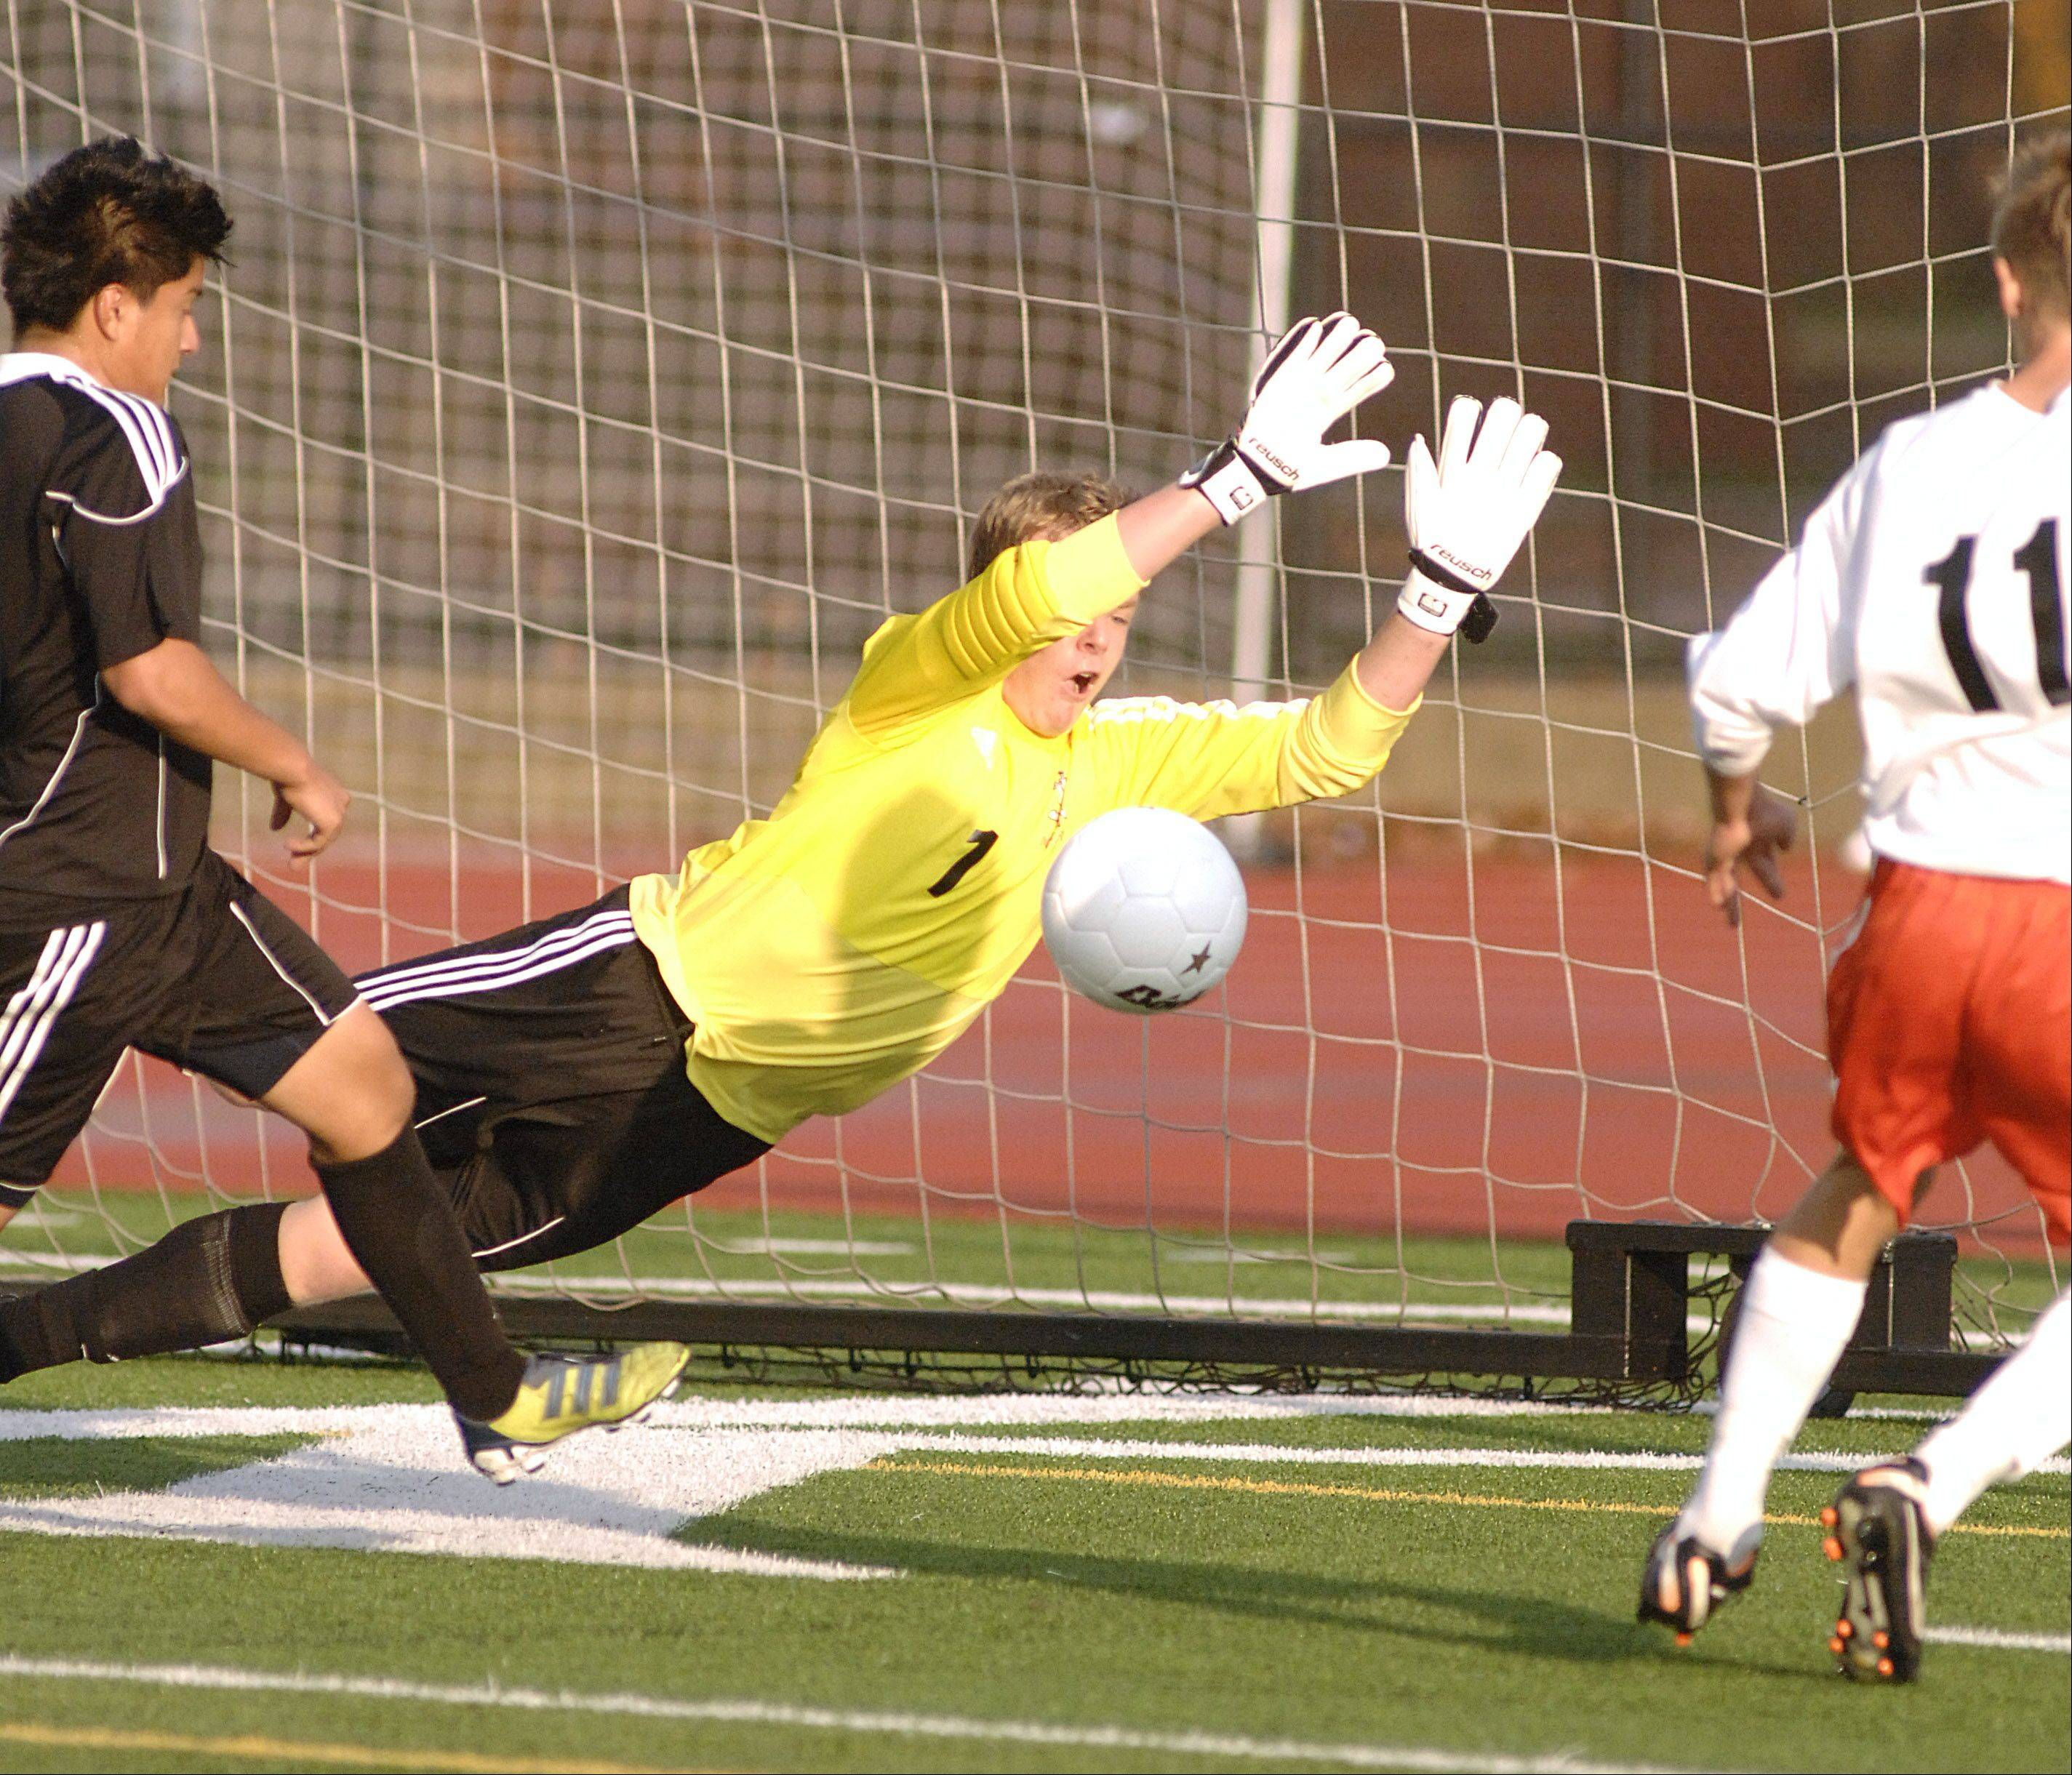 Streamwood's Phil Lewy dives in an attempt to block a goal kick by St. Charles East's Eric Dietrich in the first half on Tuesday, October 23.